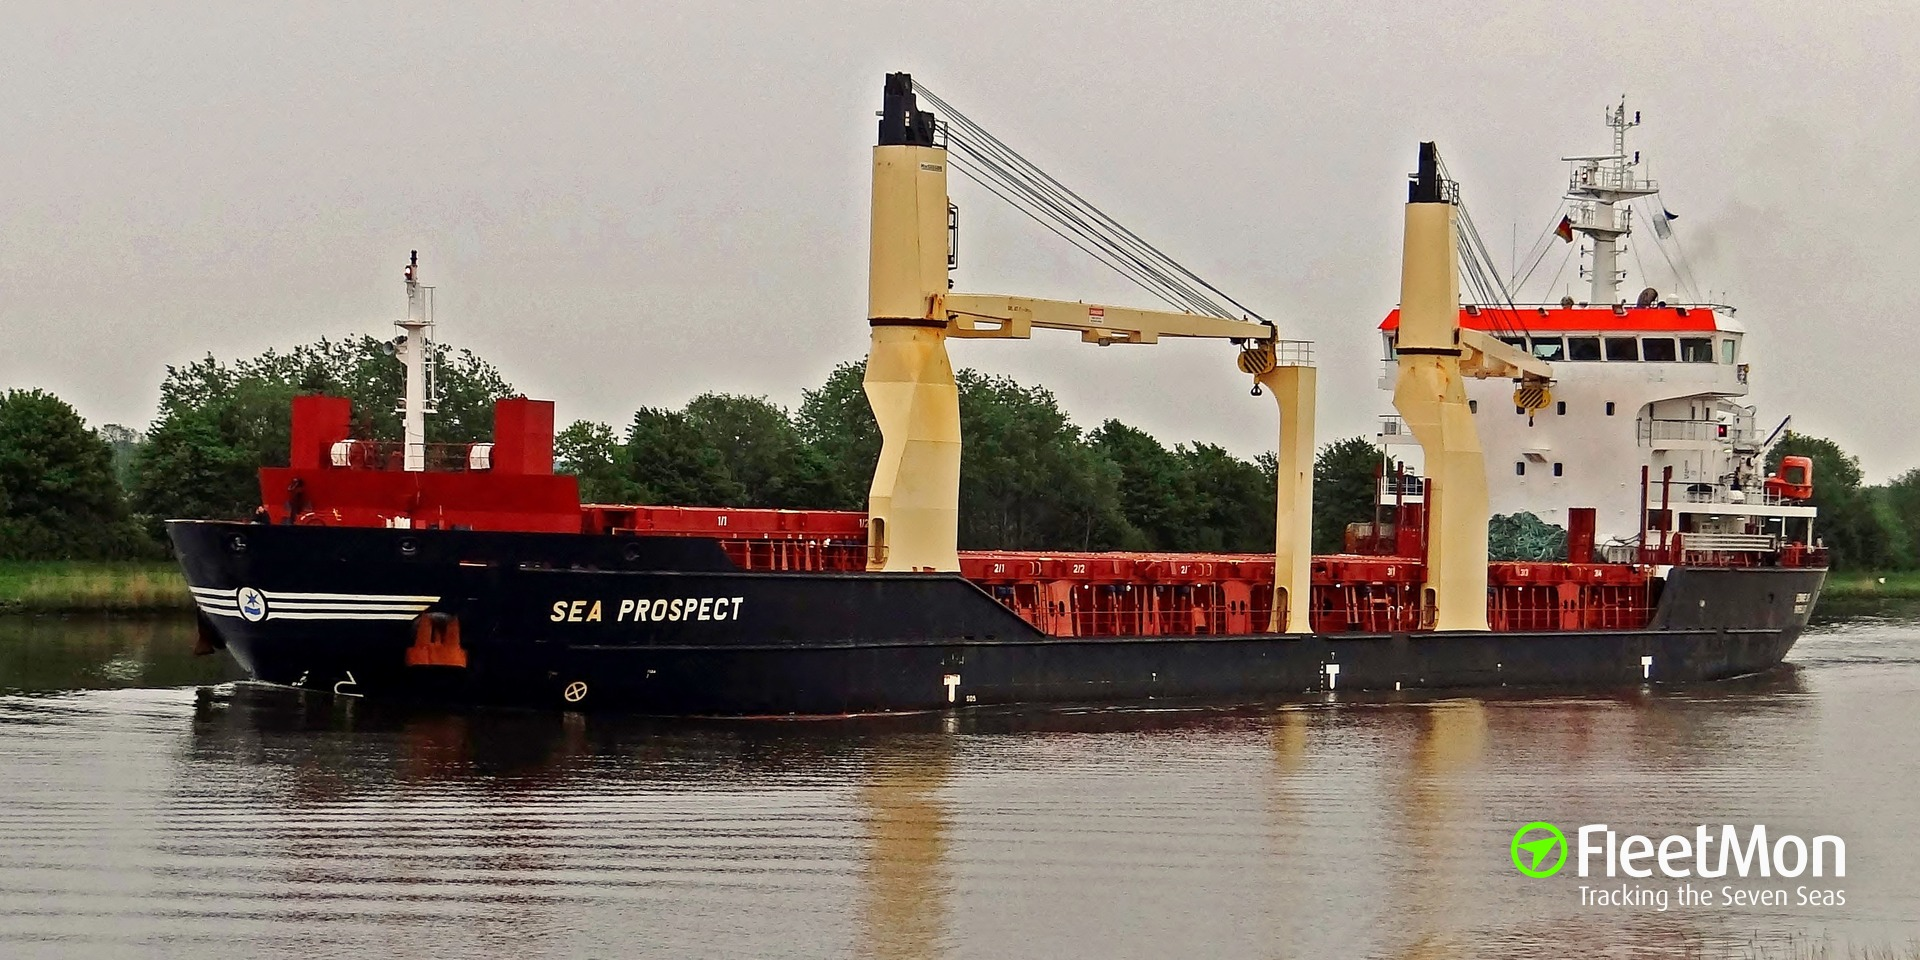 Disabled freighter towed to Cherbourg, English Canal